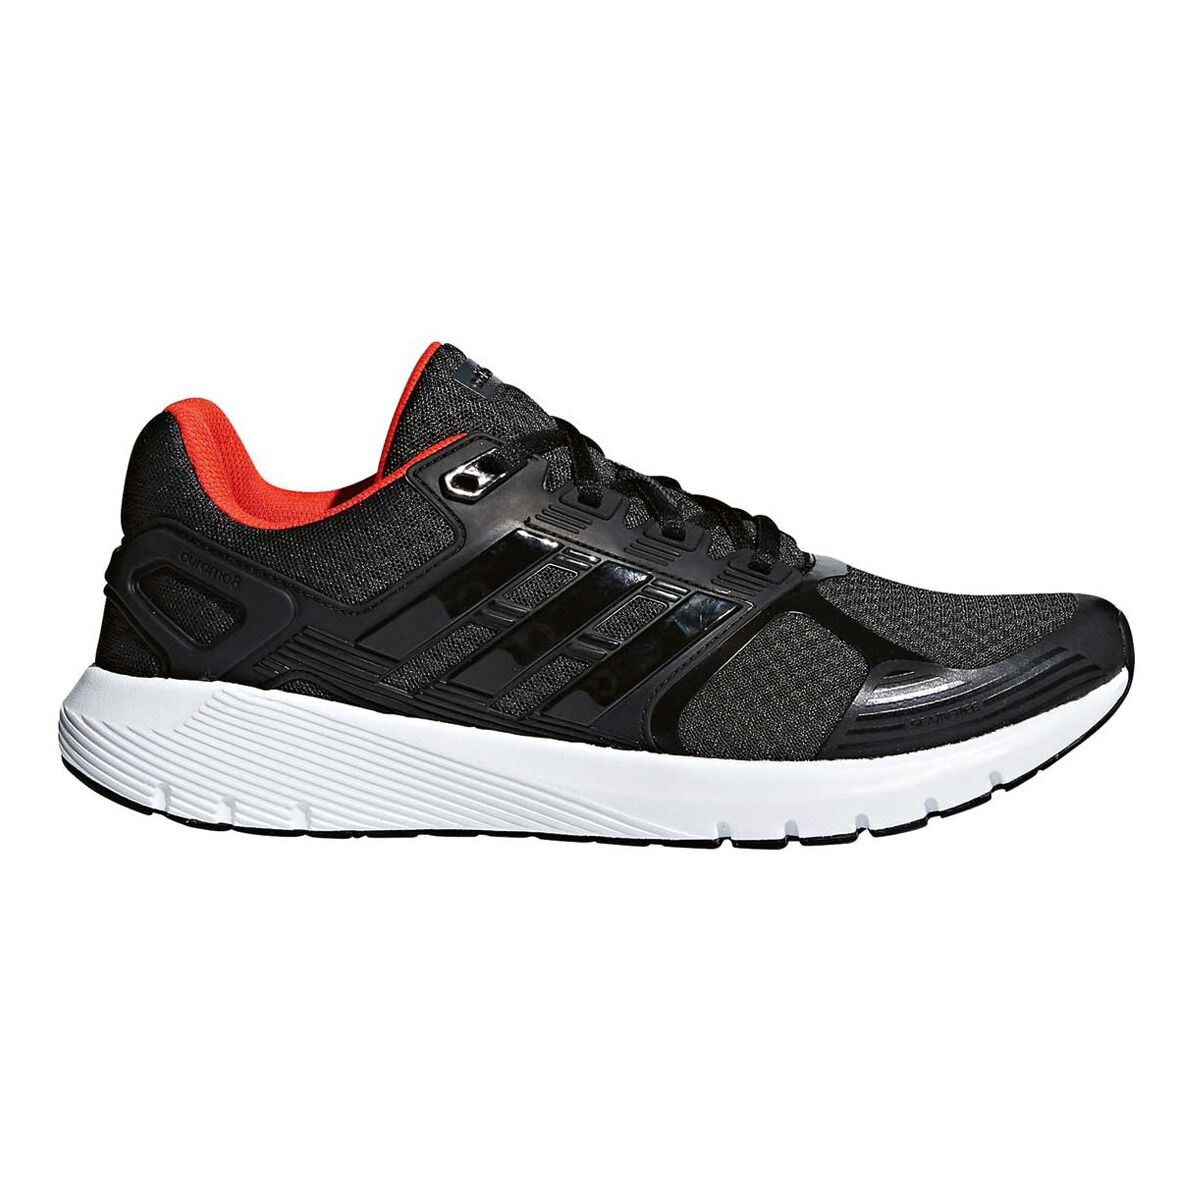 adidas Duramo 8 Mens Running Shoes Black White US 11.5